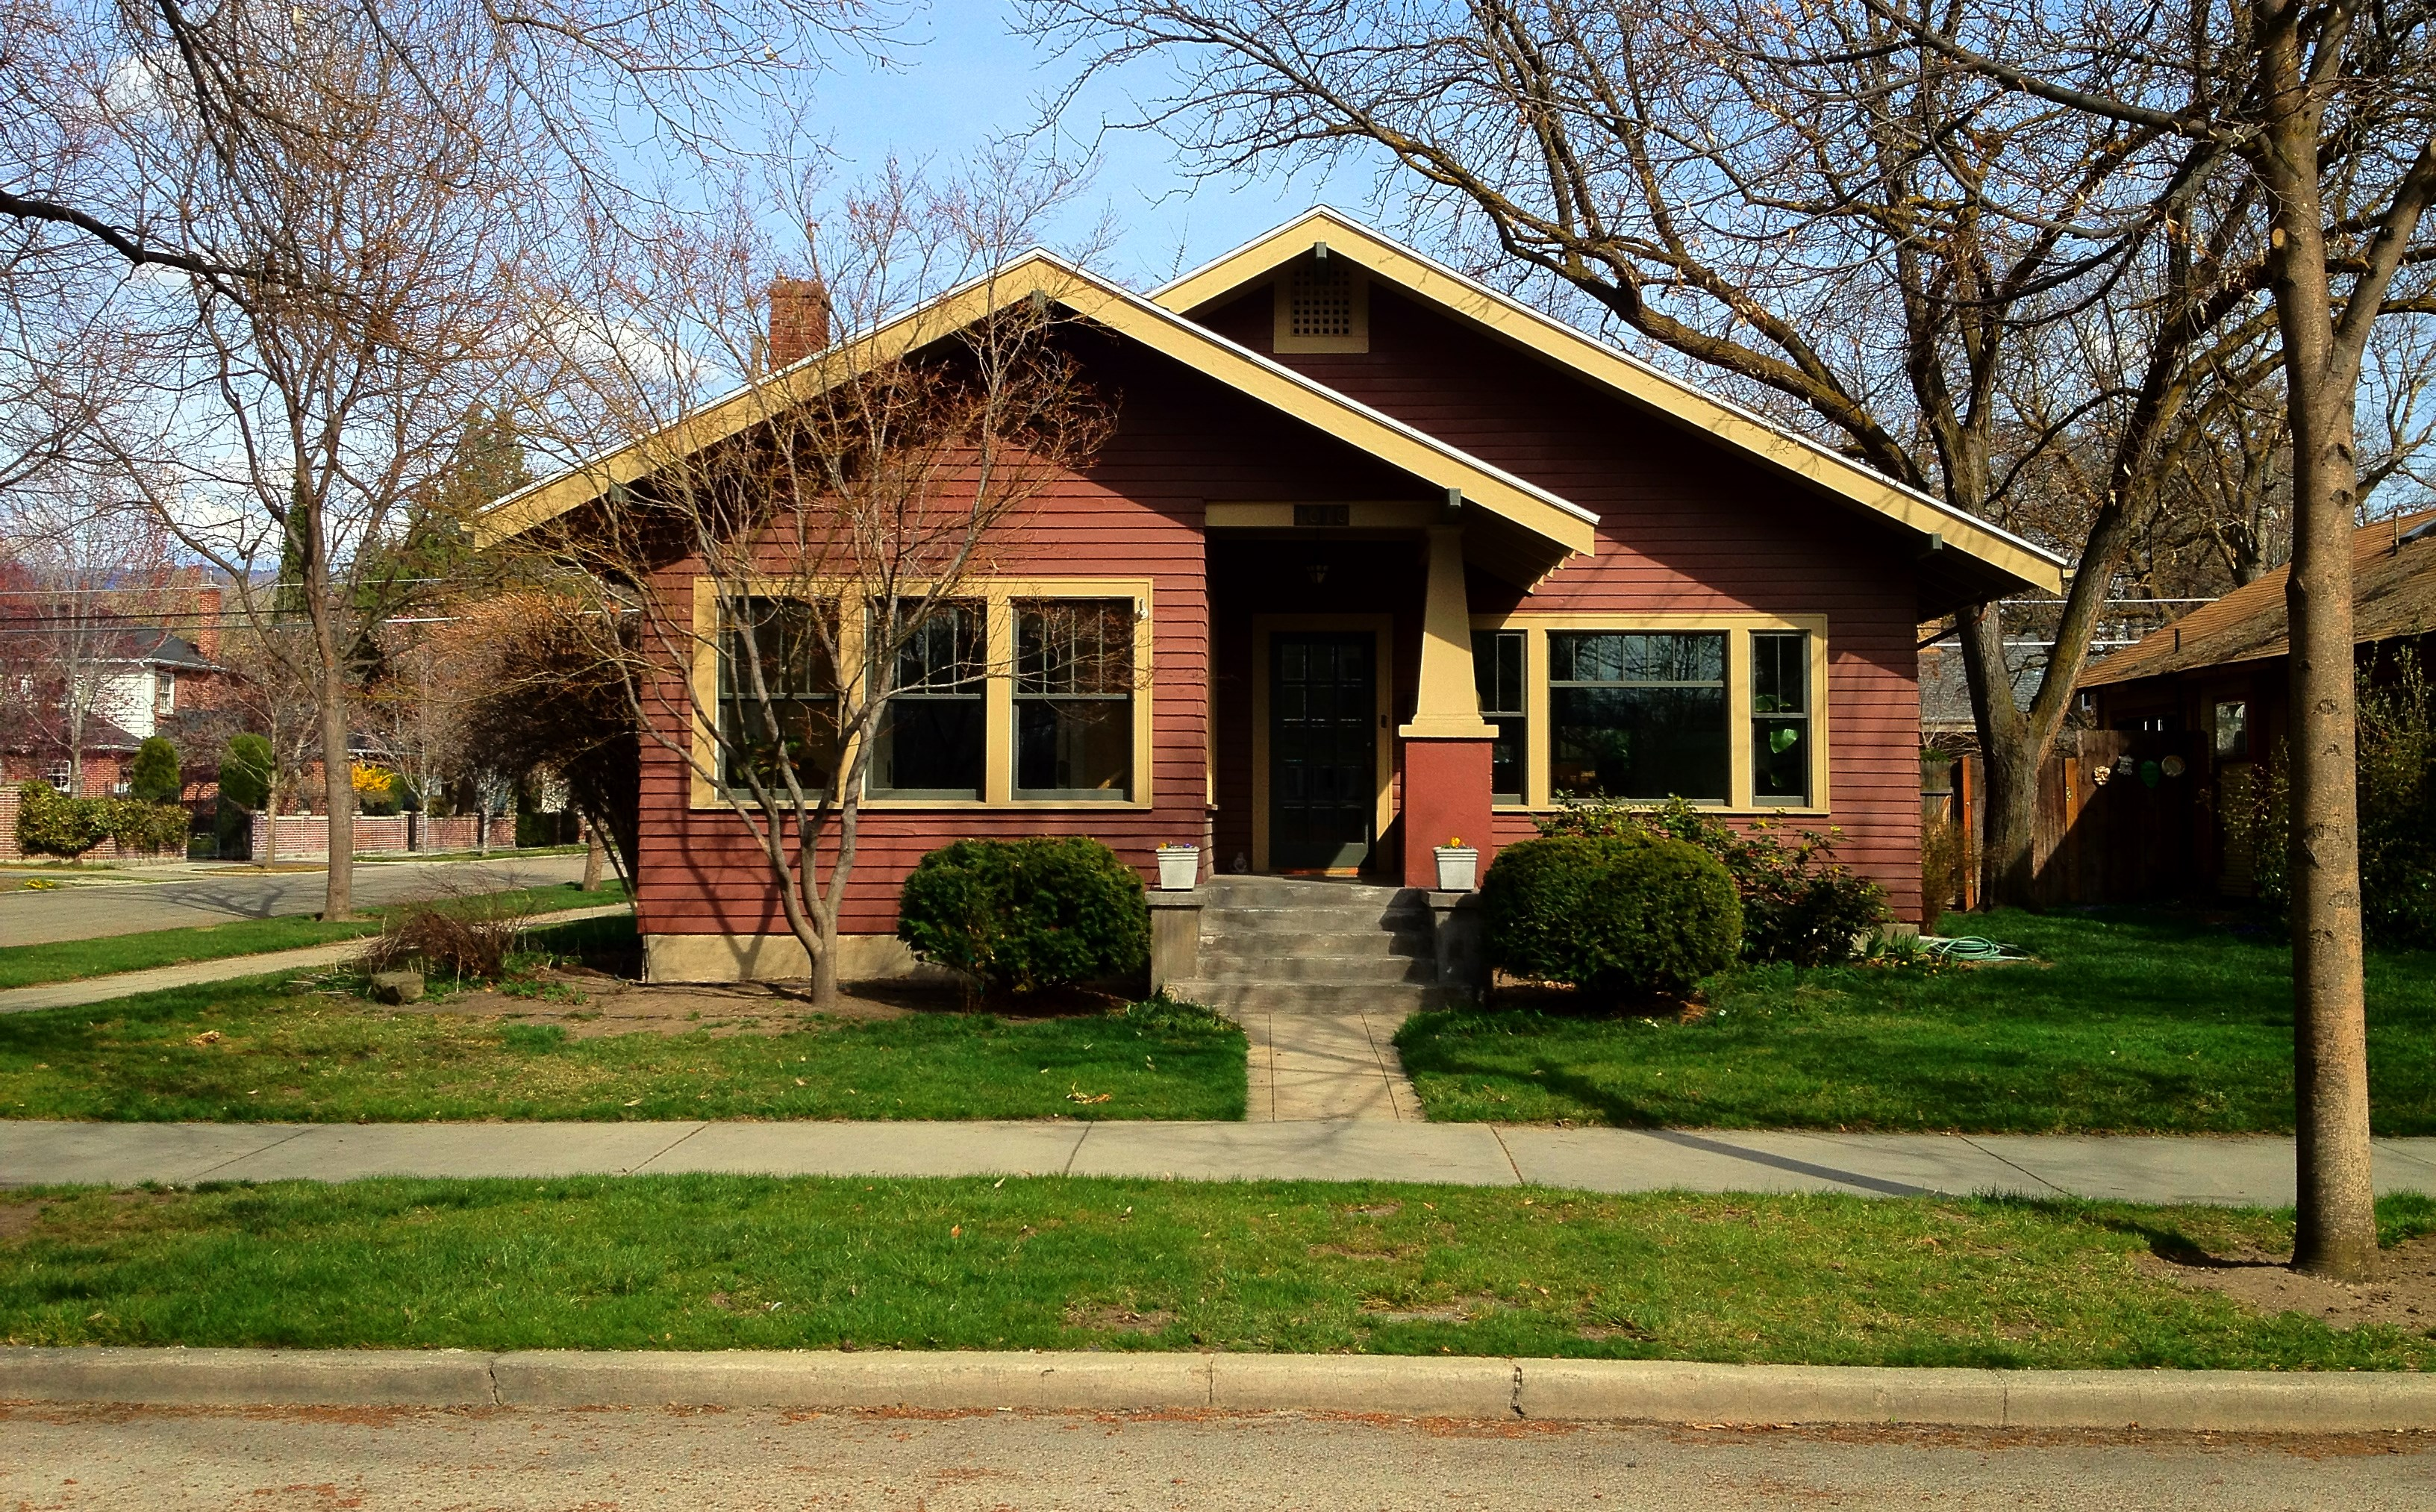 The Eclectic Bungalows Of Boise Idaho